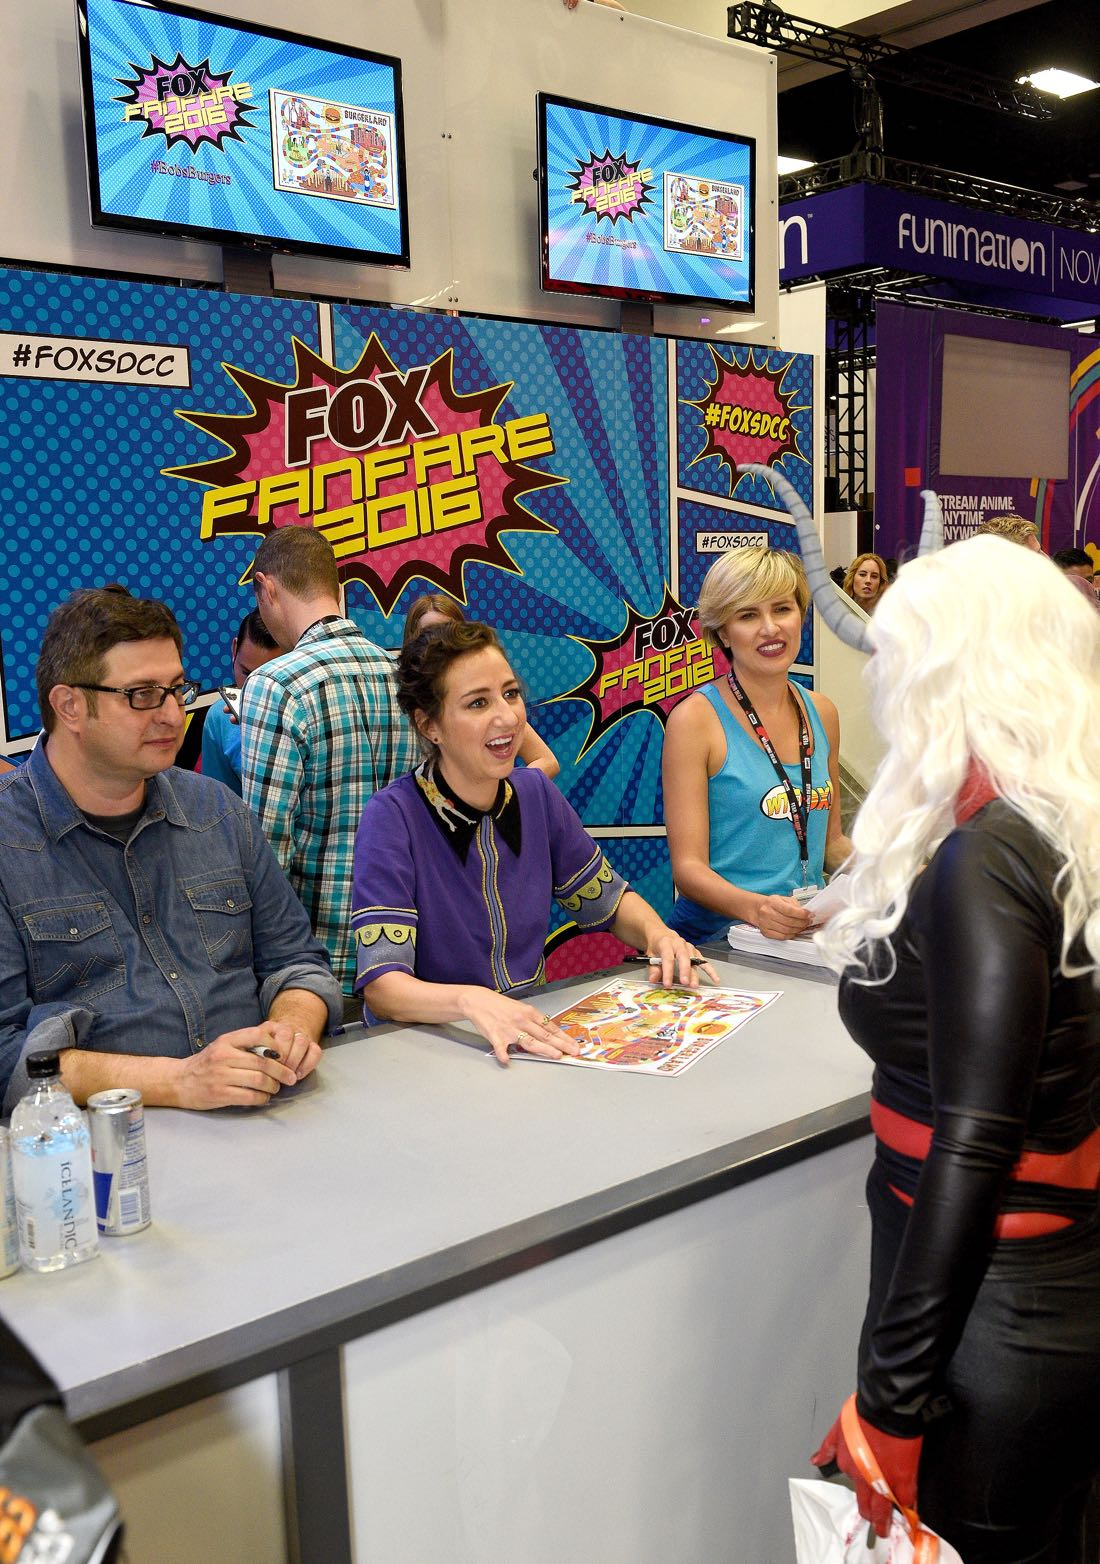 FOX FANFARE AT SAN DIEGO COMIC-CON © 2016: L-R: BOB'S BURGERS cast members Eugene Merman and Kristen Schaal during BOB'S BURGERS booth signing on Friday, July 22 at the FOX FANFARE AT SAN DIEGO COMIC-CON © 2016. CR: Alan Hess/FOX © 2016 FOX BROADCASTING